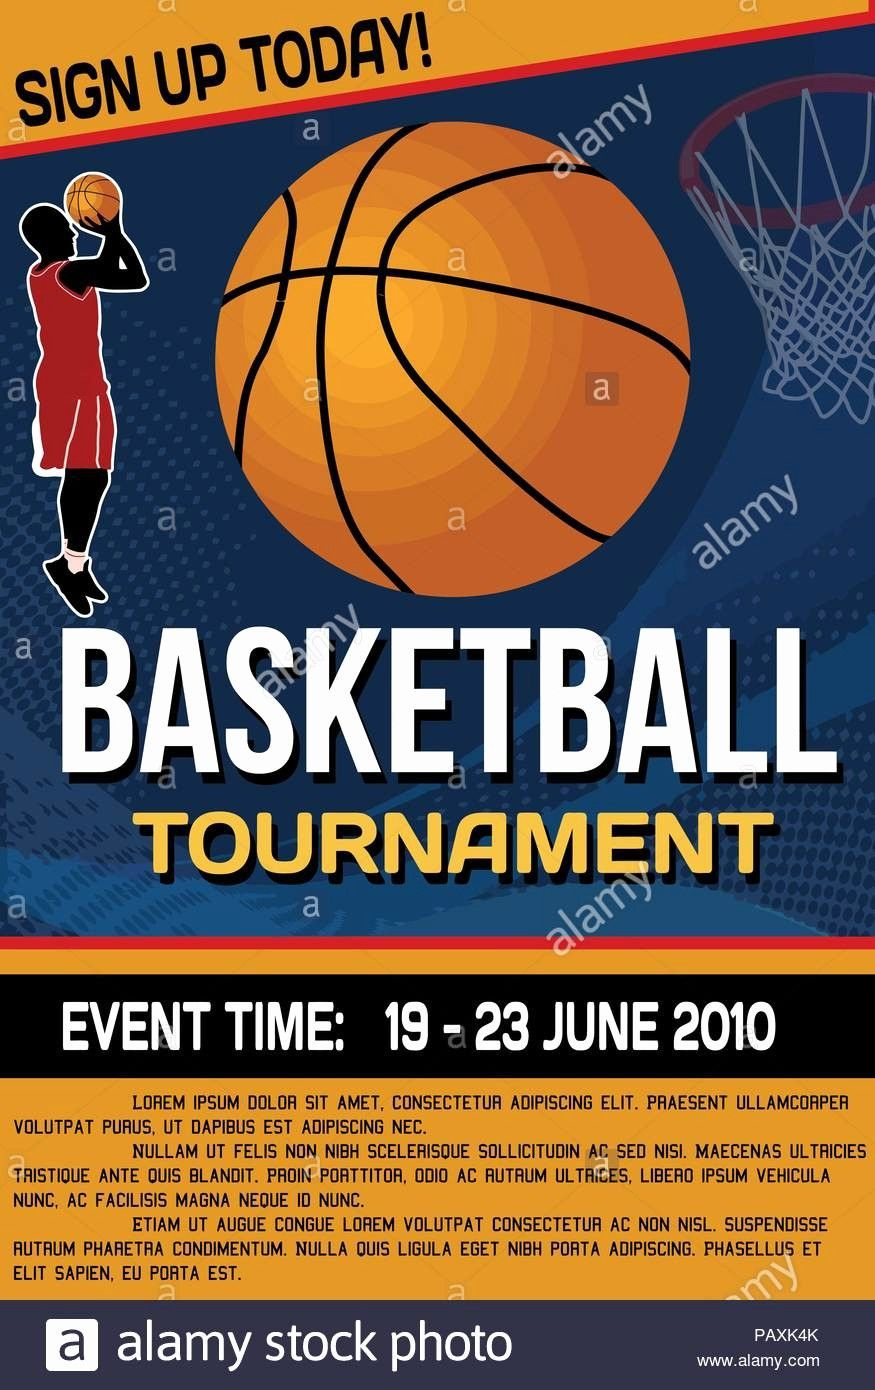 007 Fearsome Basketball Tournament Flyer Template Design  3 On FreeFull